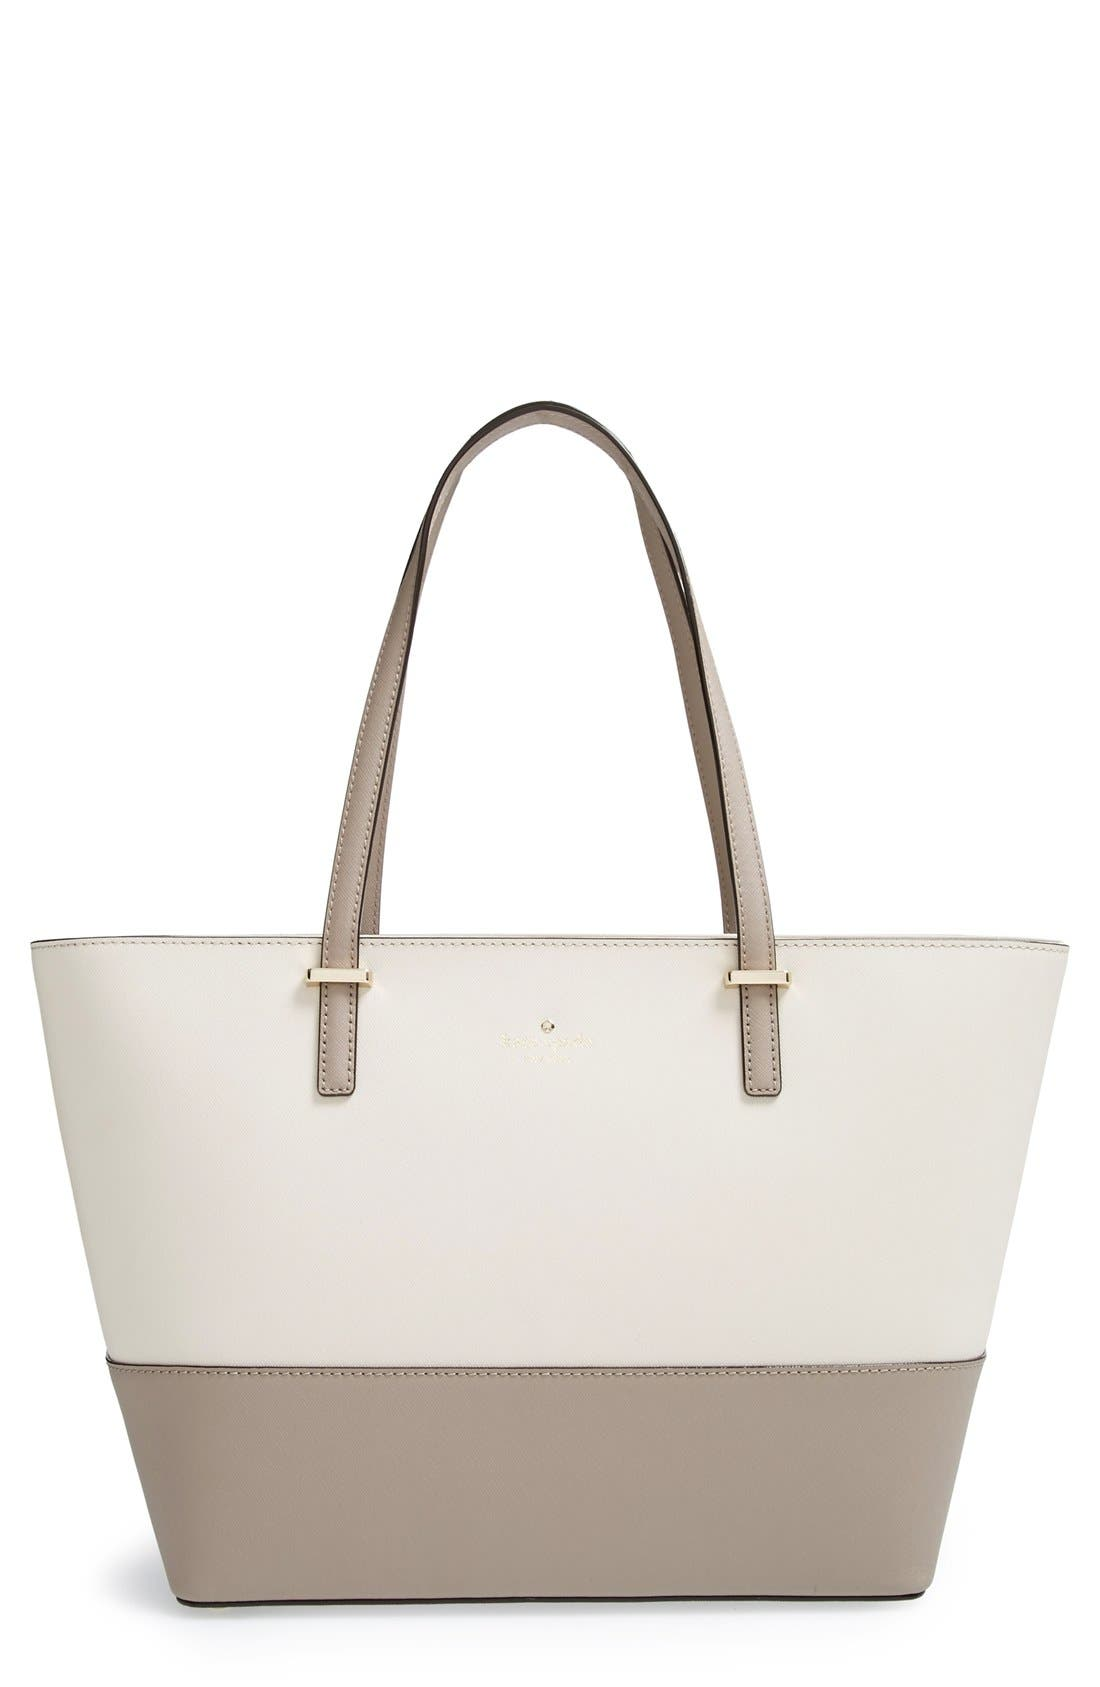 Alternate Image 1 Selected - kate spade new york 'small cedar street harmony' tote